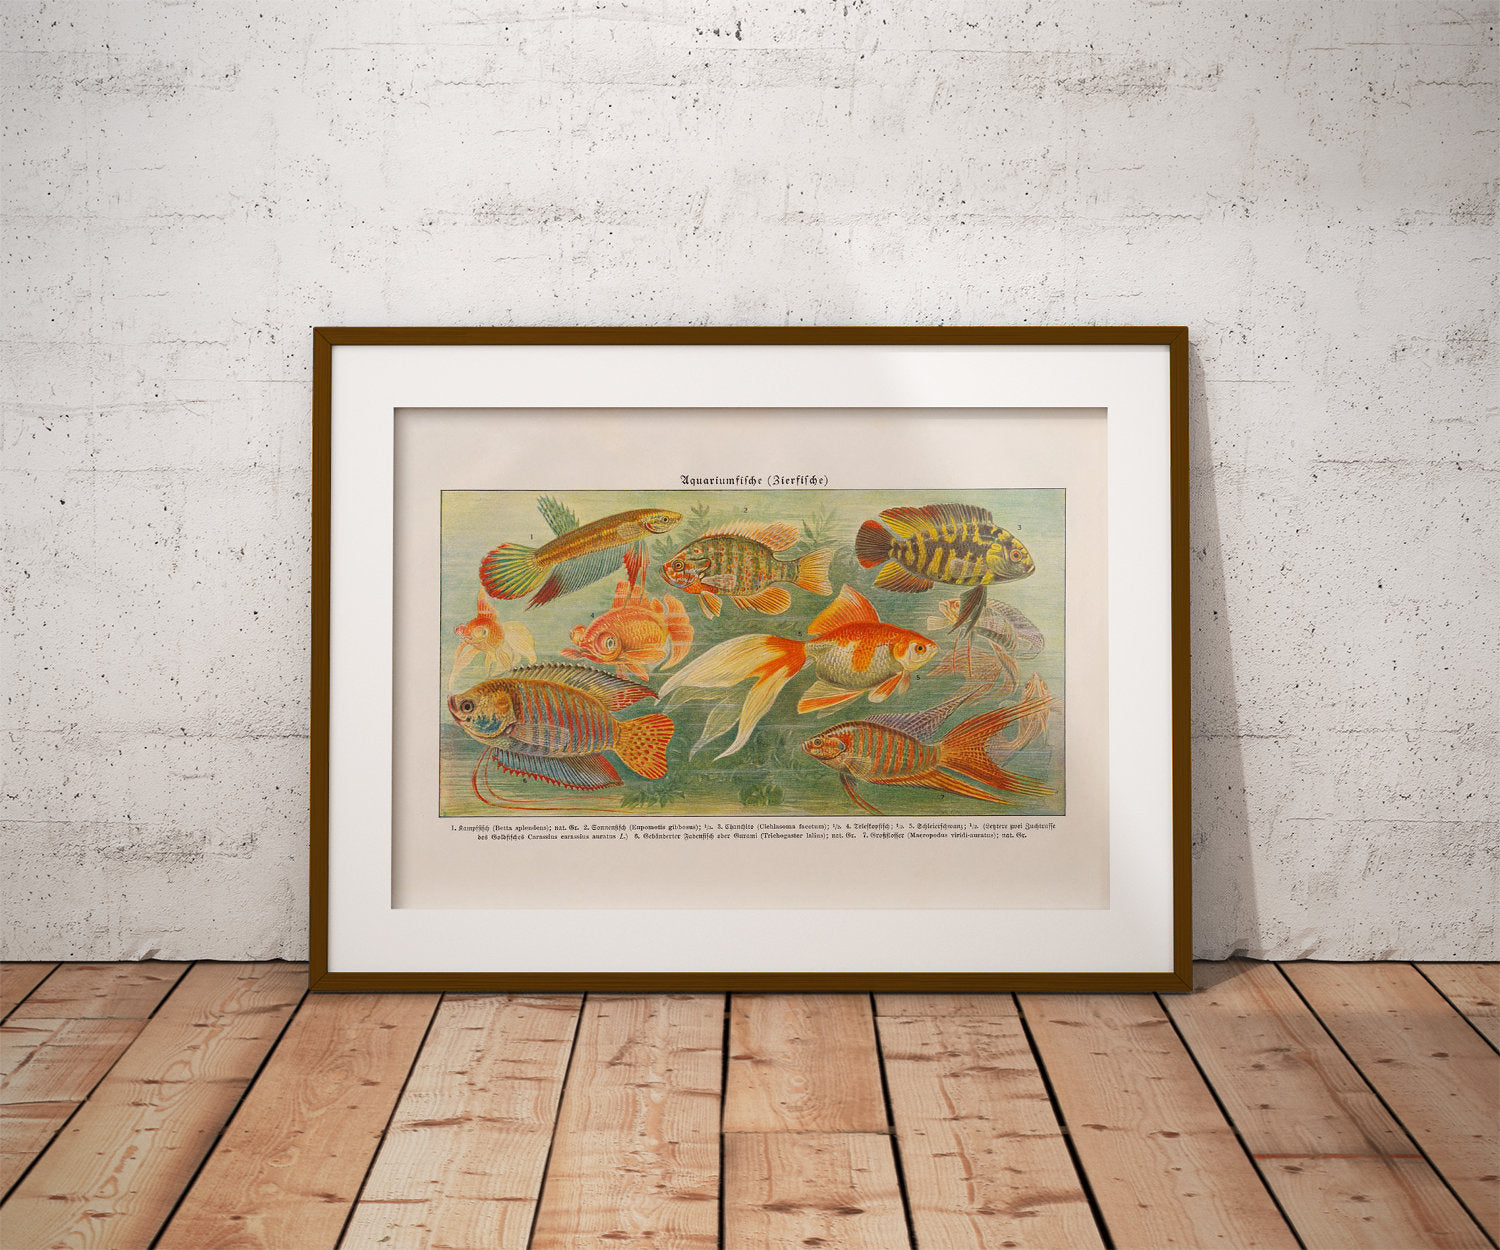 Aquarium Fish II - Kuriosis Vintage Prints